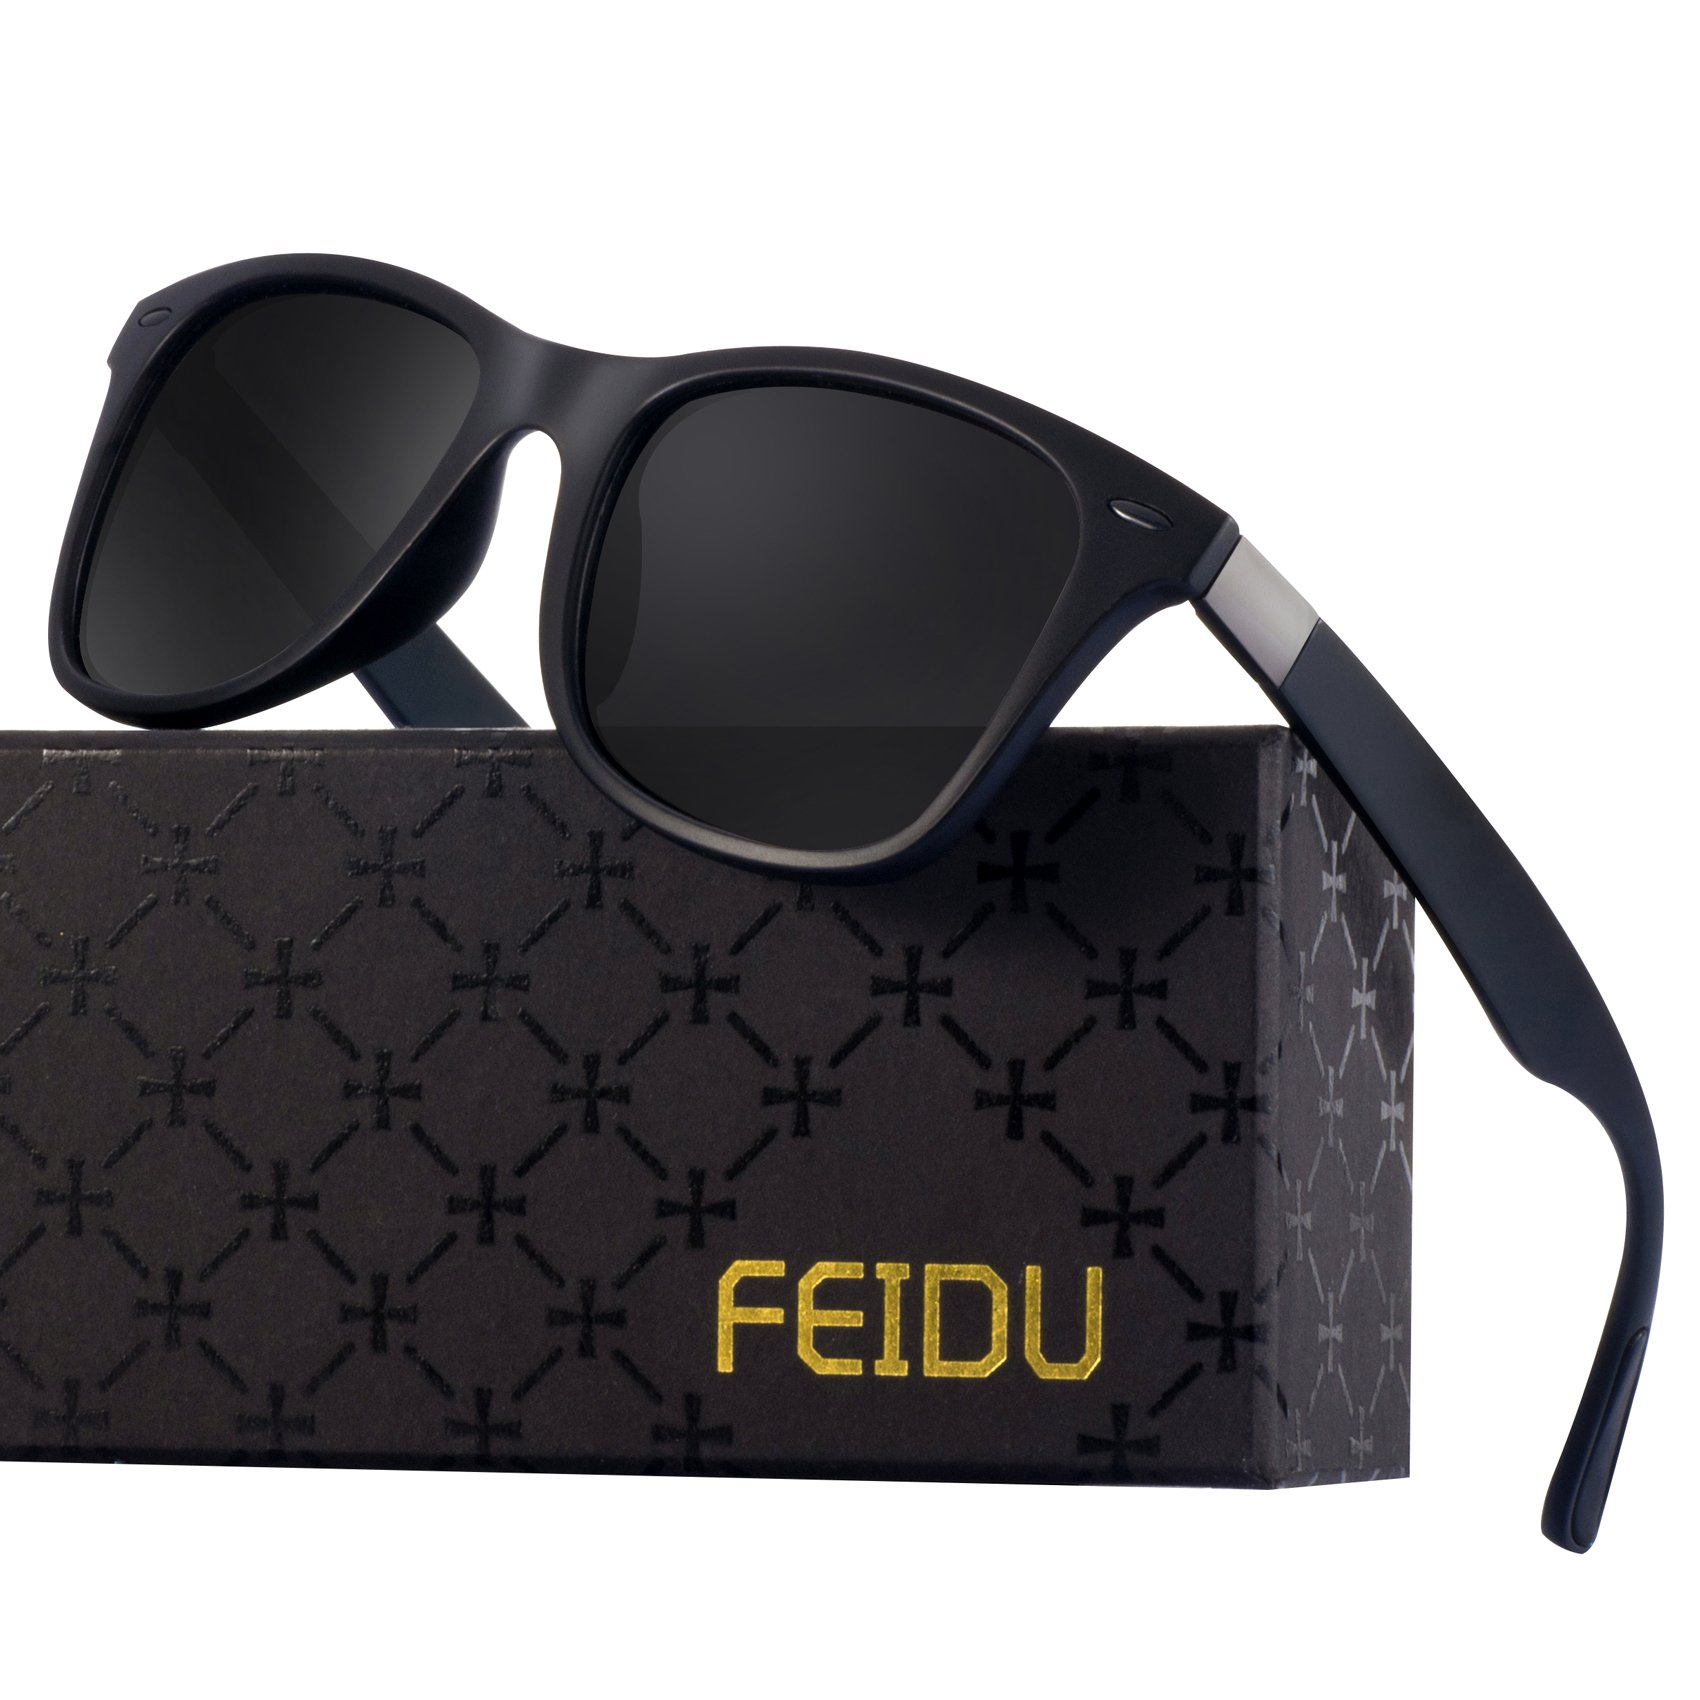 Polarized Wayfarer Sunglasses for Men - FEIDU HD Vision Polarized Sunglasses Mens FD2149 (black/black-2150, 2.08)